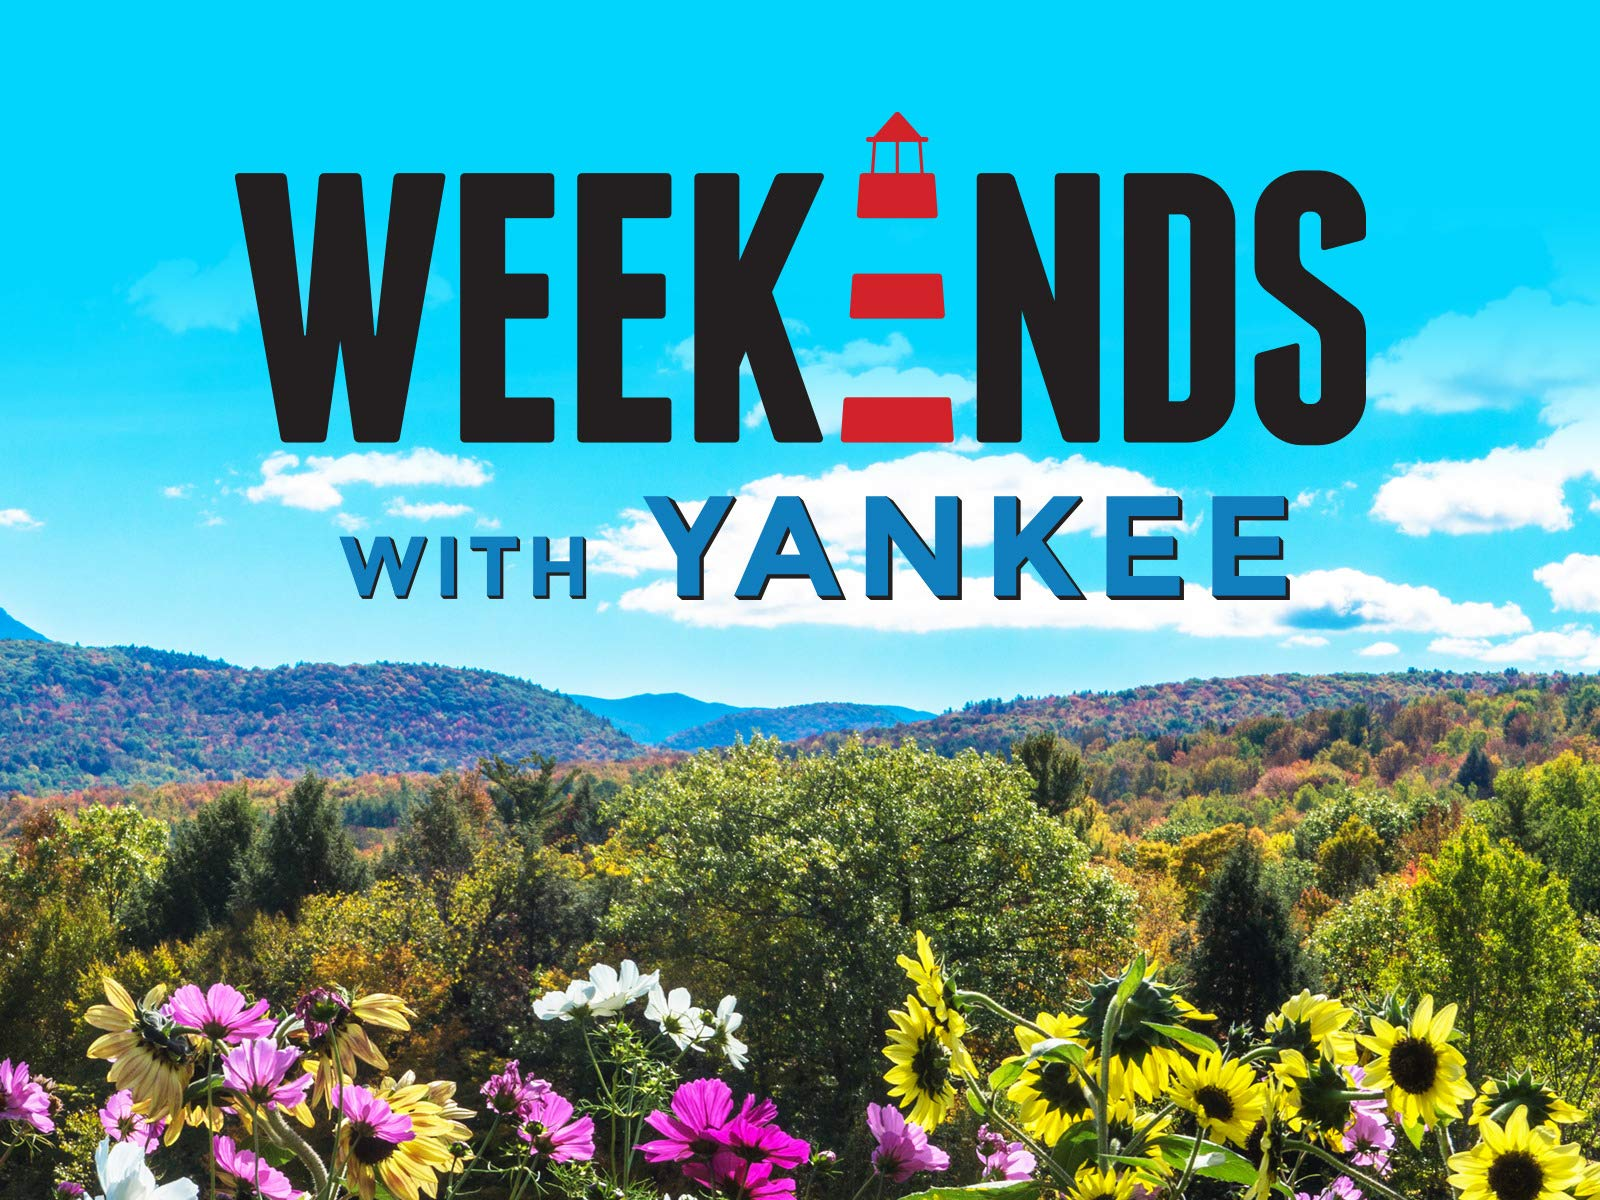 Amazon.com: Weekends with Yankee: Season 2: Richard Wiese, Amy Traverso, Rennik Soholt, Anne Adams, Laurie Donnelly